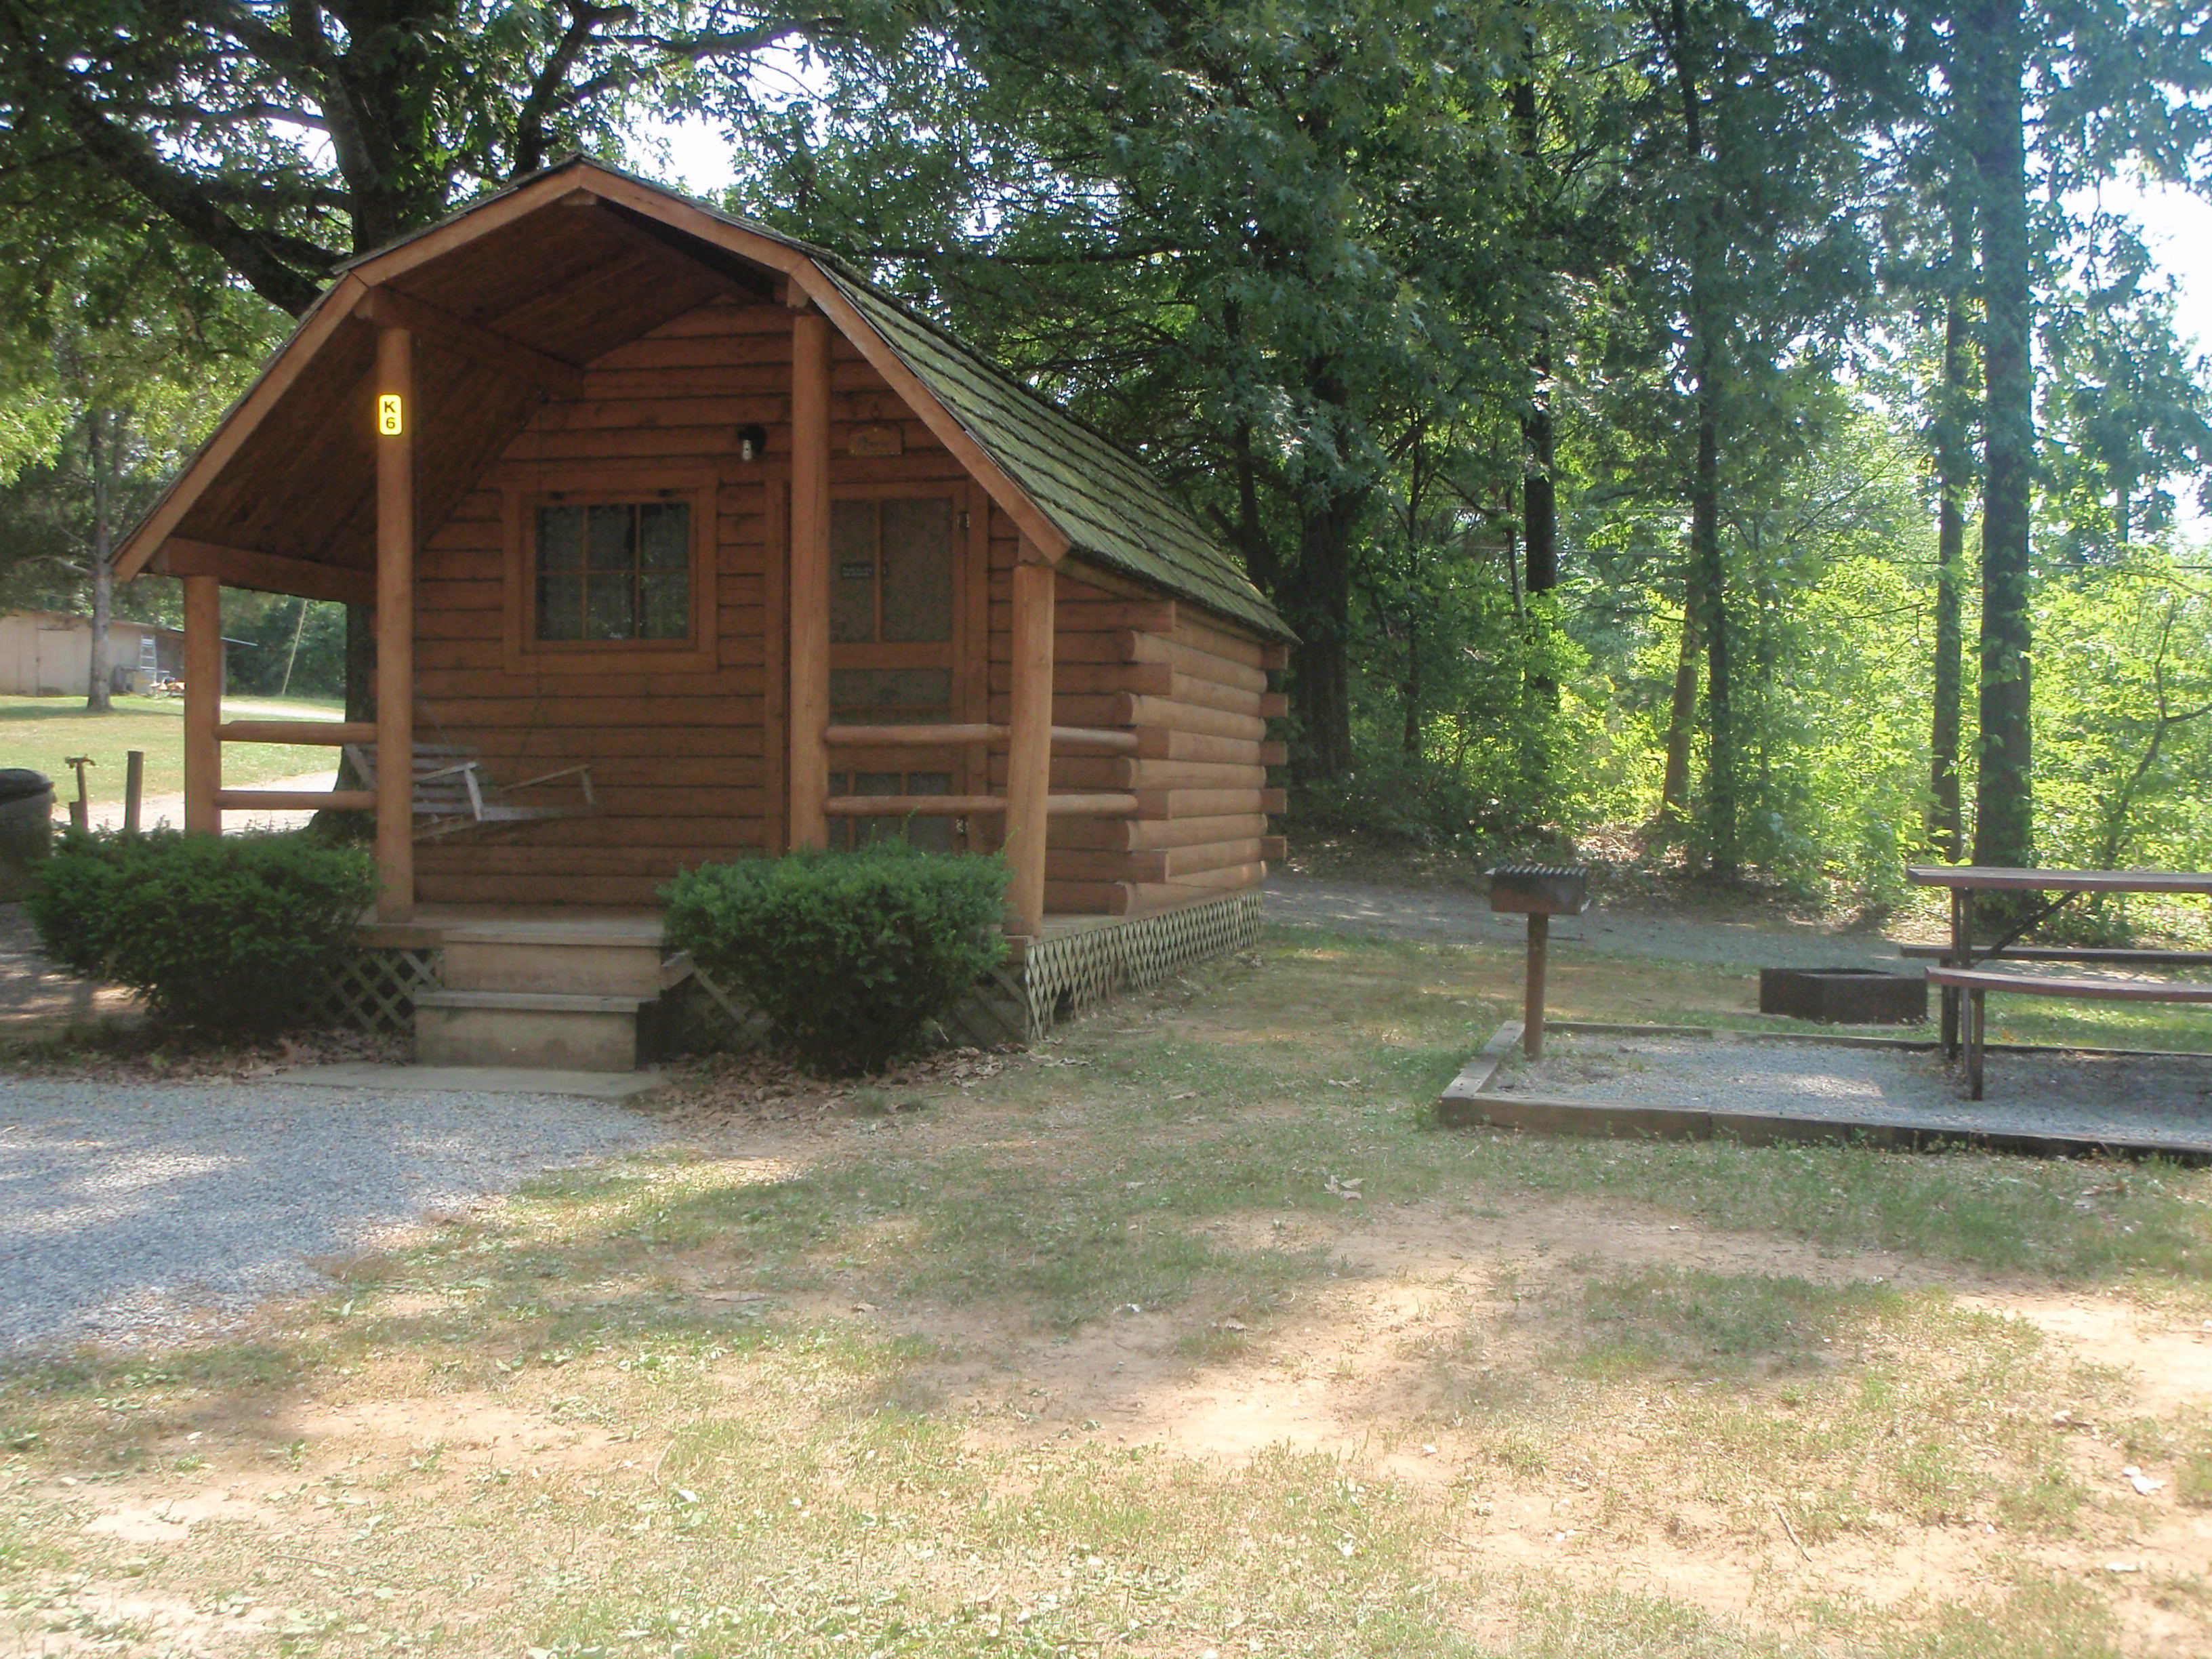 sweetwater cabins tennessee exit koa i campgrounds park cabin site rentals lake murray type lodging state